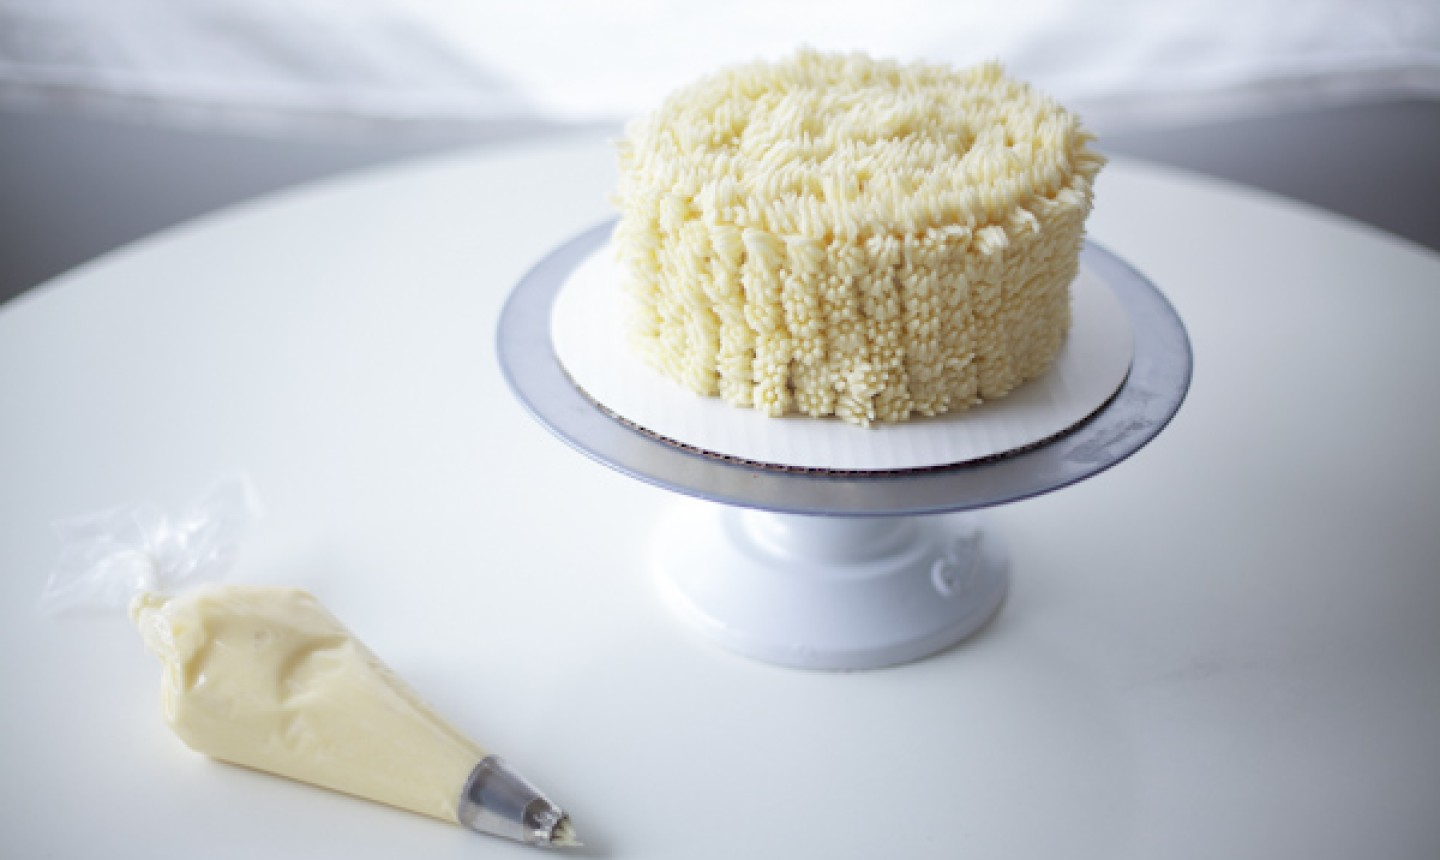 piped cake